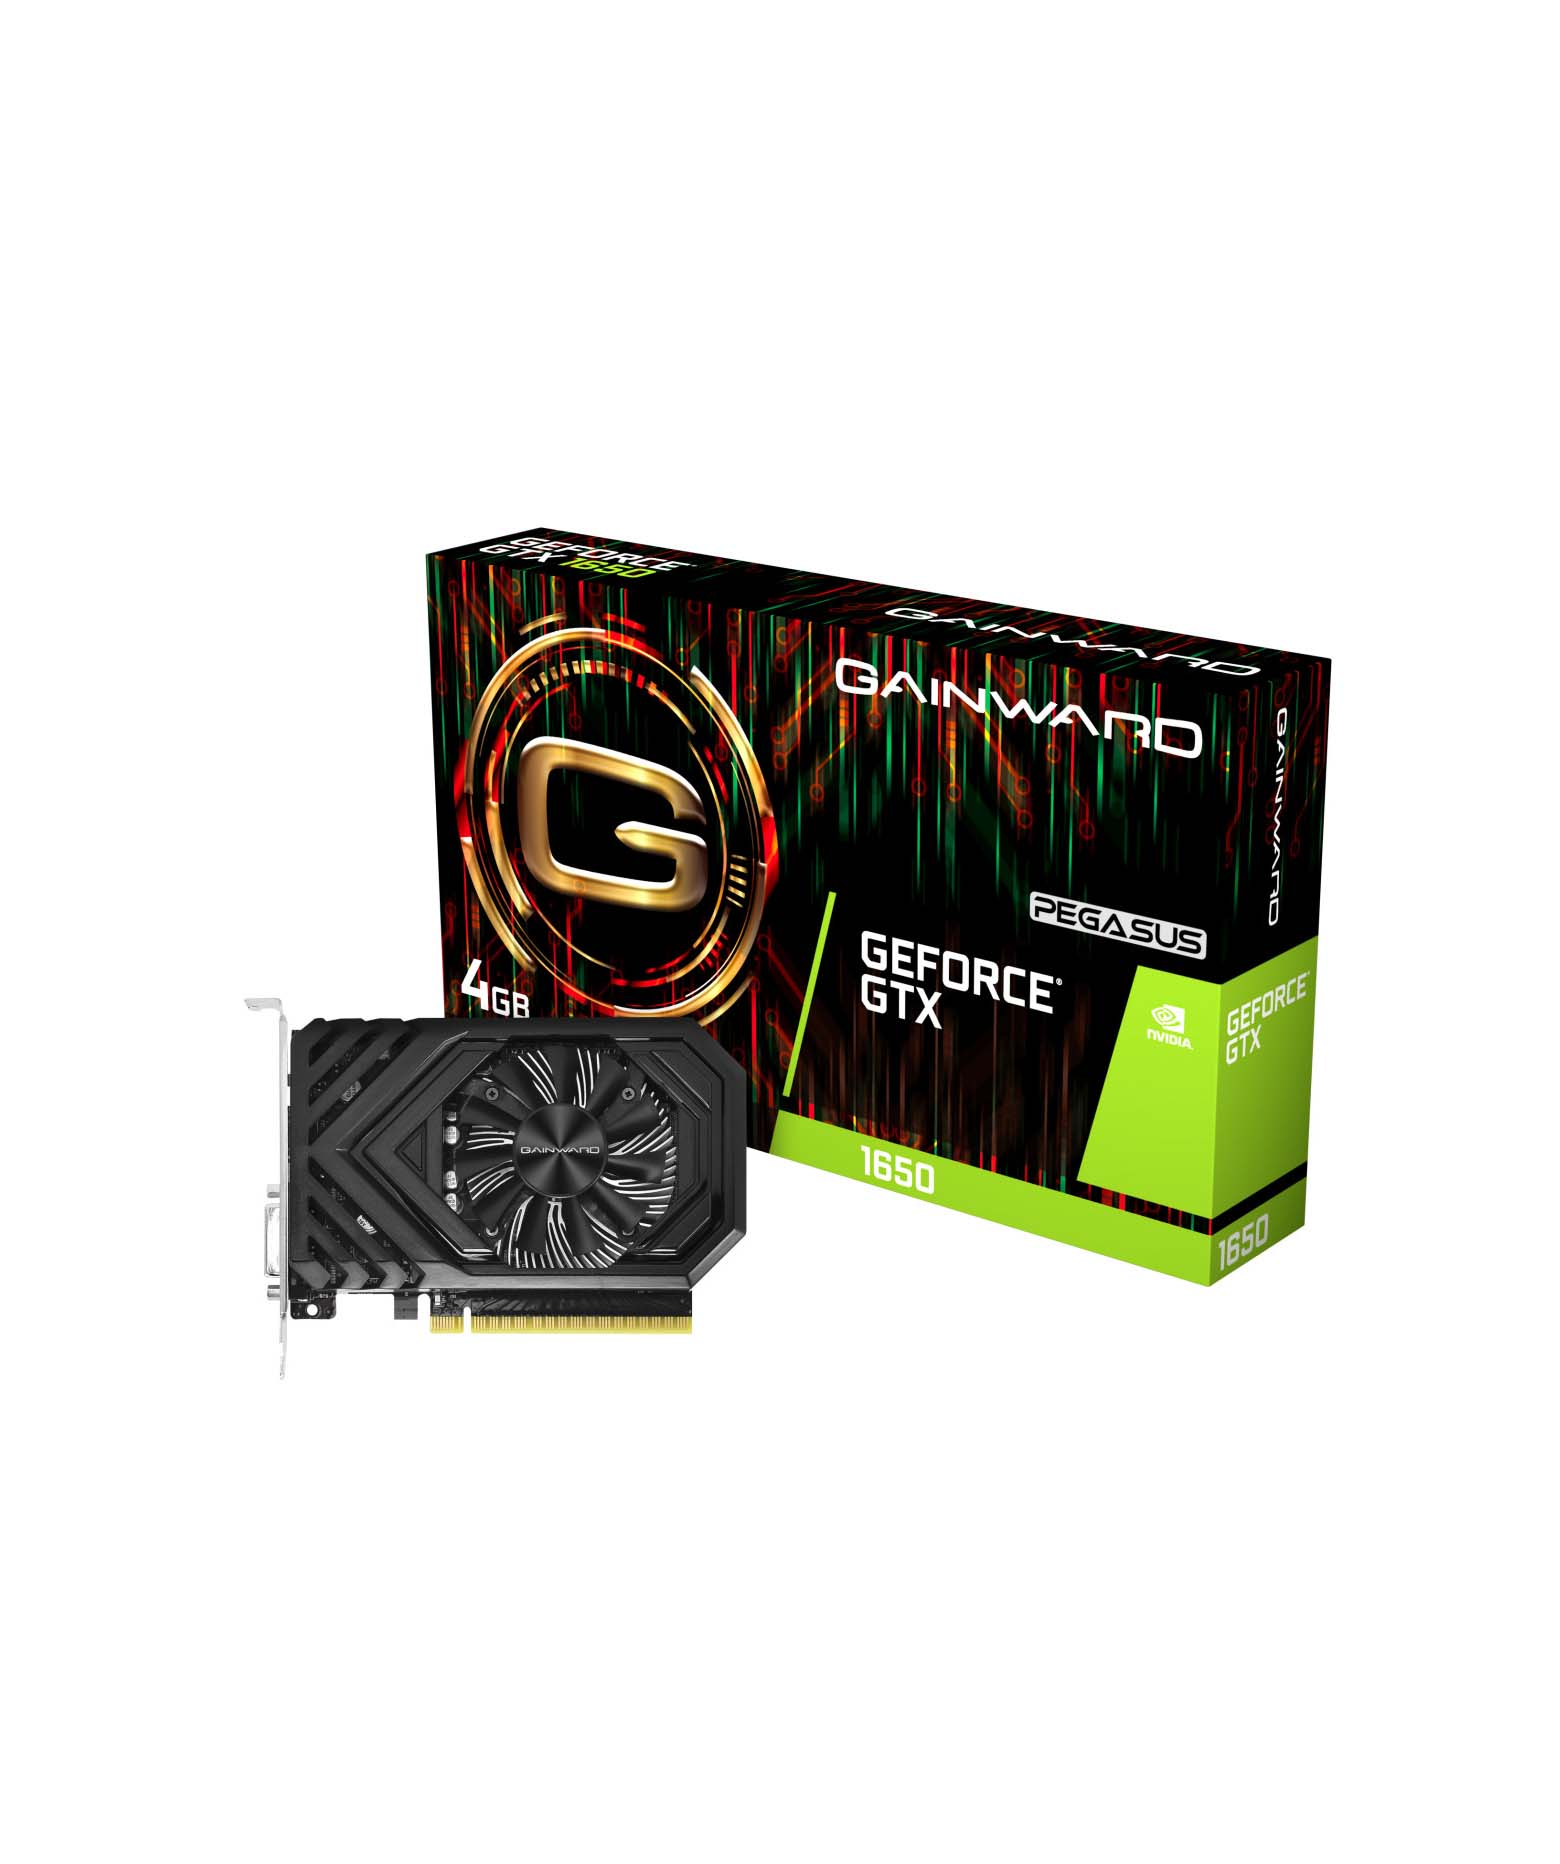 Gainward GeForce GTX 1650 4GB Pegasus 426018336-4467 Κάρτα Γραφικών